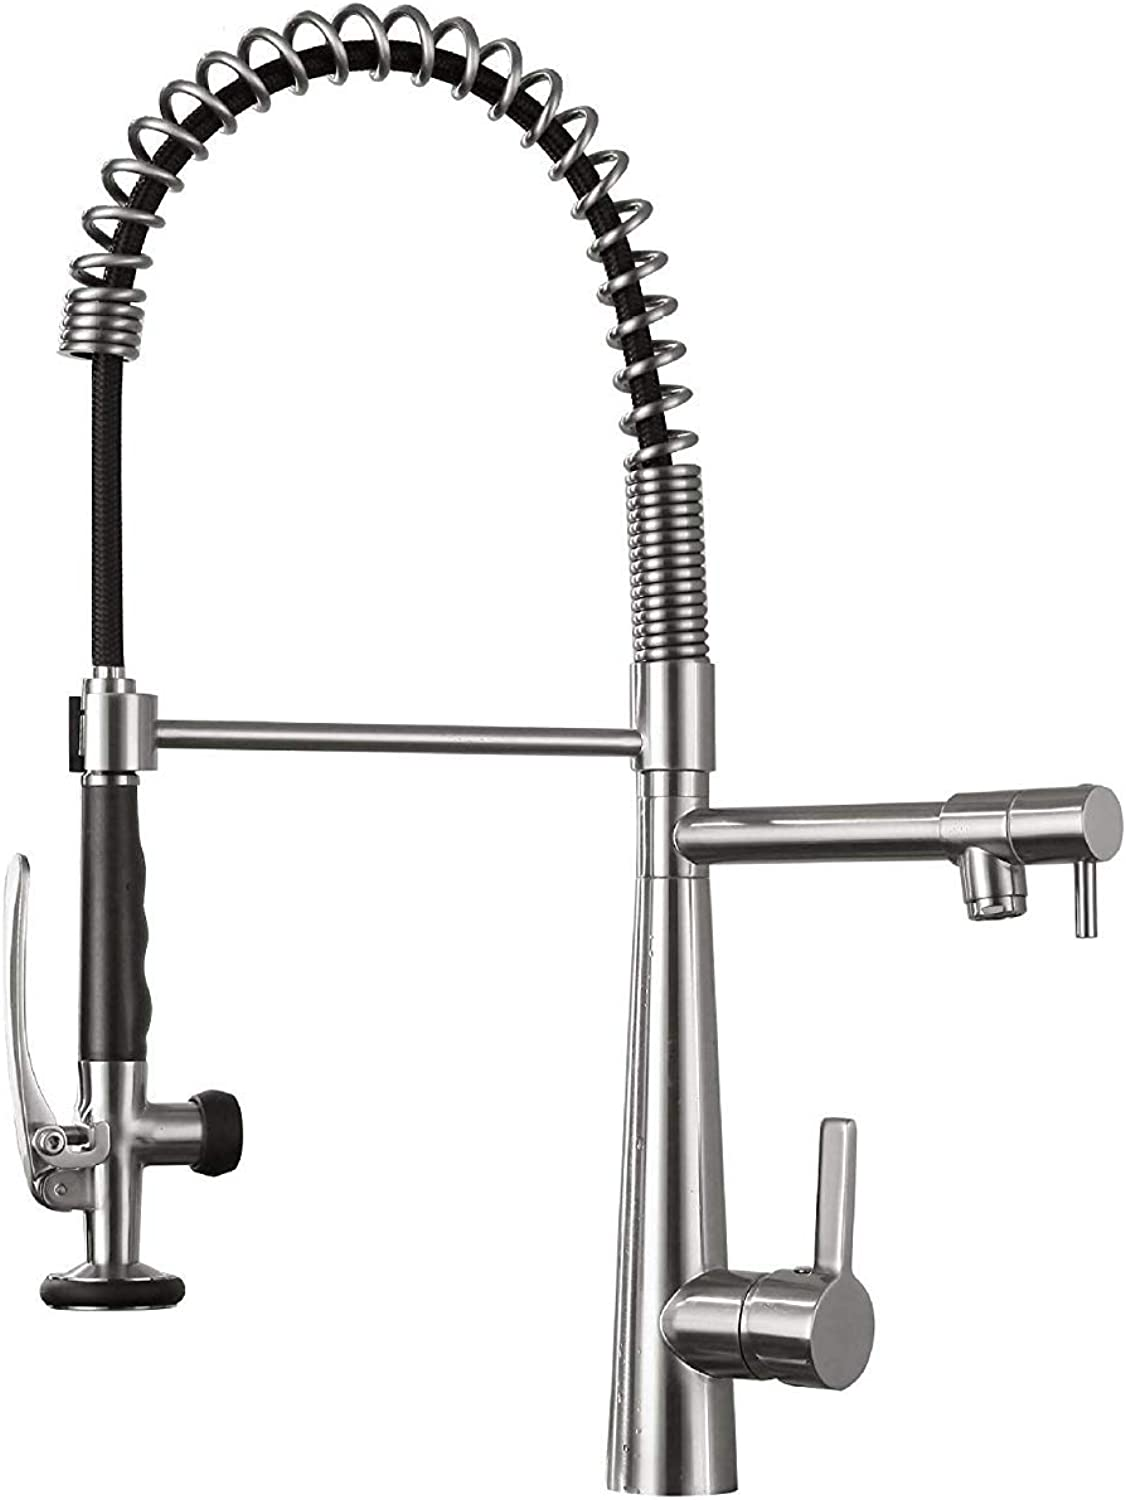 XINXI HOME Taps Faucet Kitchen Sink Sink Faucet Hot And Cold Spring Sink redating Faucet